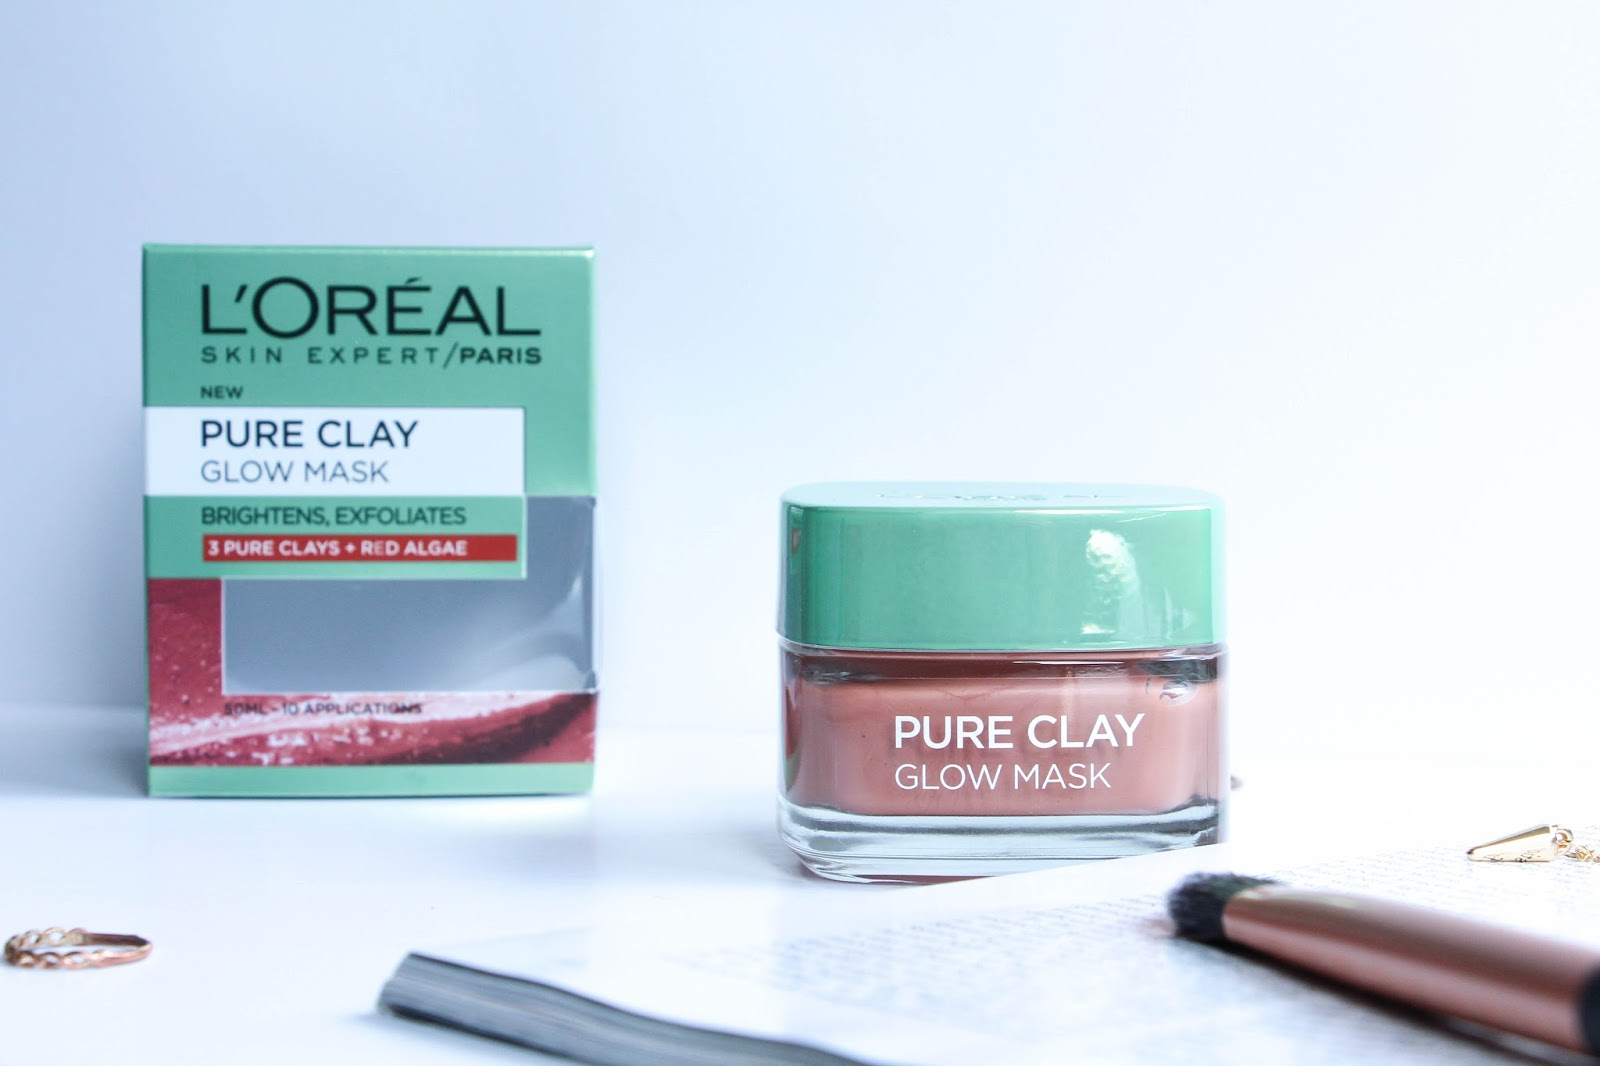 Loreal_Paris_Pure_Clay_Masks